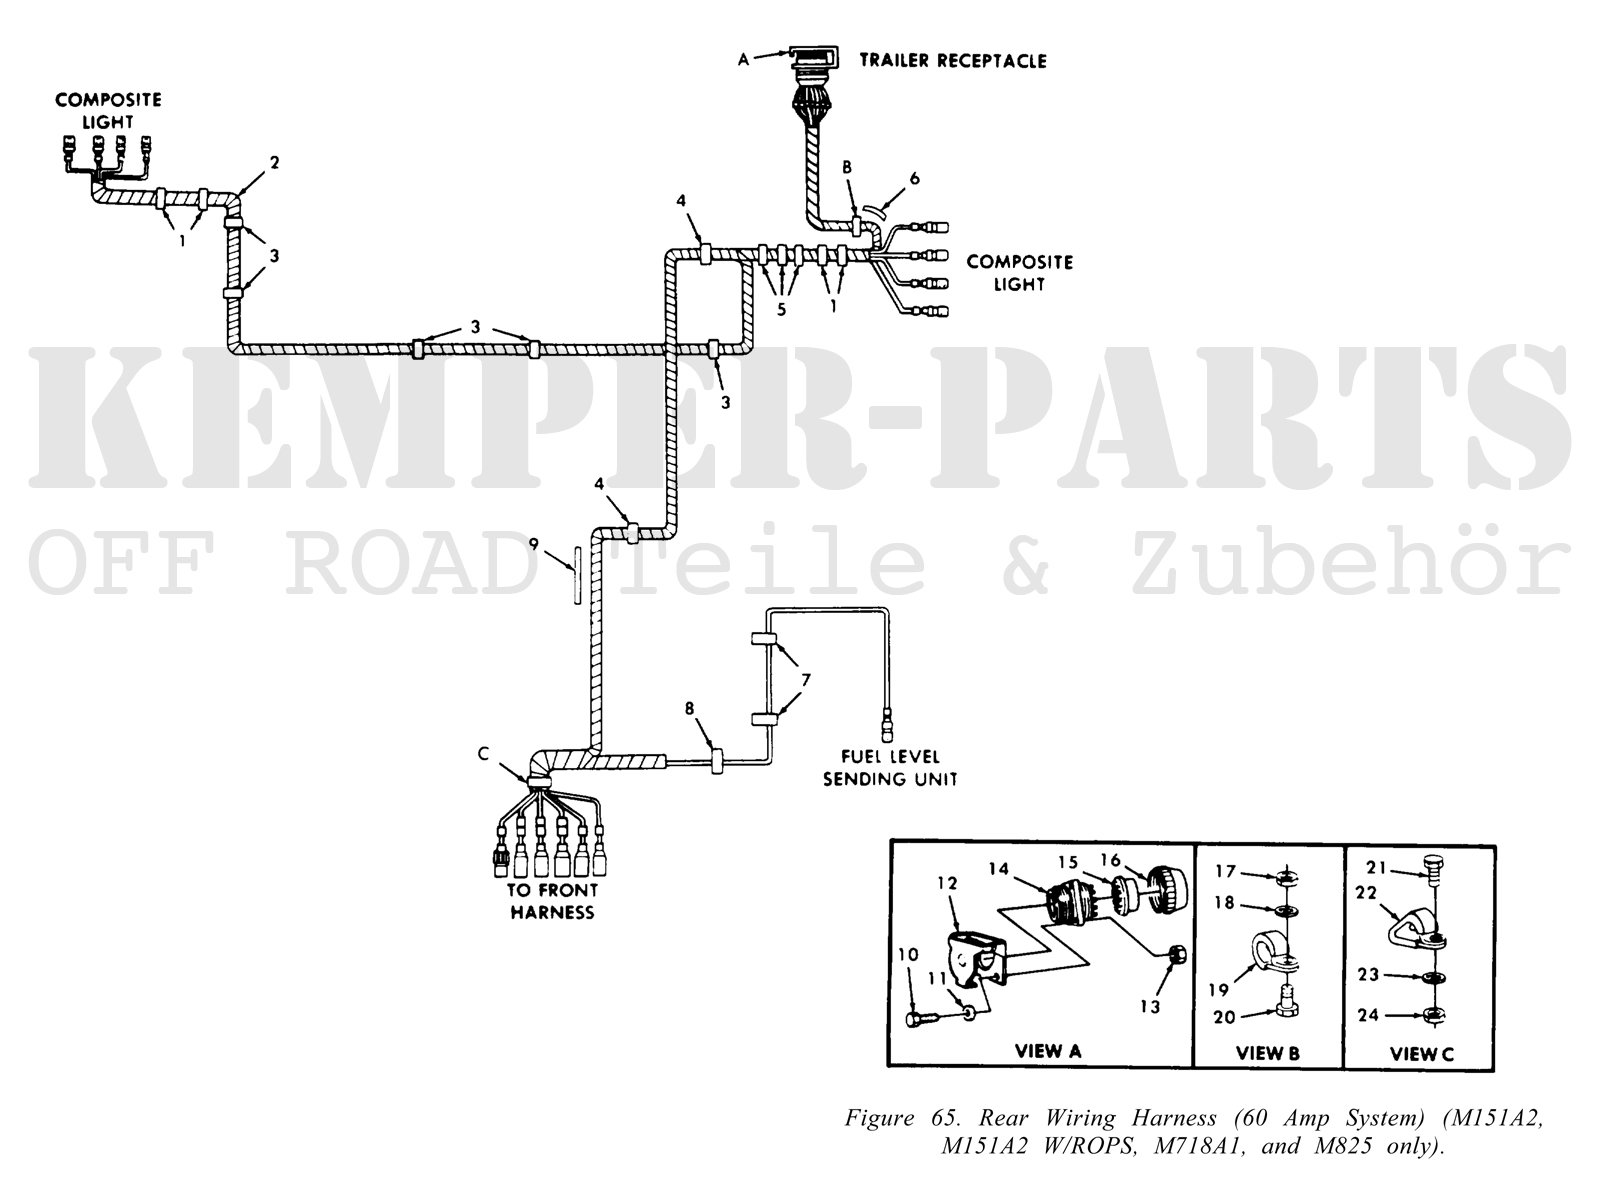 M151 A2 Wiring Harness - Rear M Wiring Diagram on 66 block wiring diagram, hmmwv wiring diagram, m38a1 wiring diagram, gpw wiring diagram, m35a2 wiring diagram, m55 wiring diagram, m38 wiring diagram, m37 wiring diagram, m12 wiring diagram, m939 wiring diagram, 1942 jeep wiring diagram, cucv wiring diagram, 67 camaro dash wiring diagram, m151a2 wiring diagram, m151a1 wiring diagram, 69 chevelle wiring diagram, m47 wiring diagram, m715 wiring diagram, 66 chevelle wiring diagram, m1009 wiring diagram,